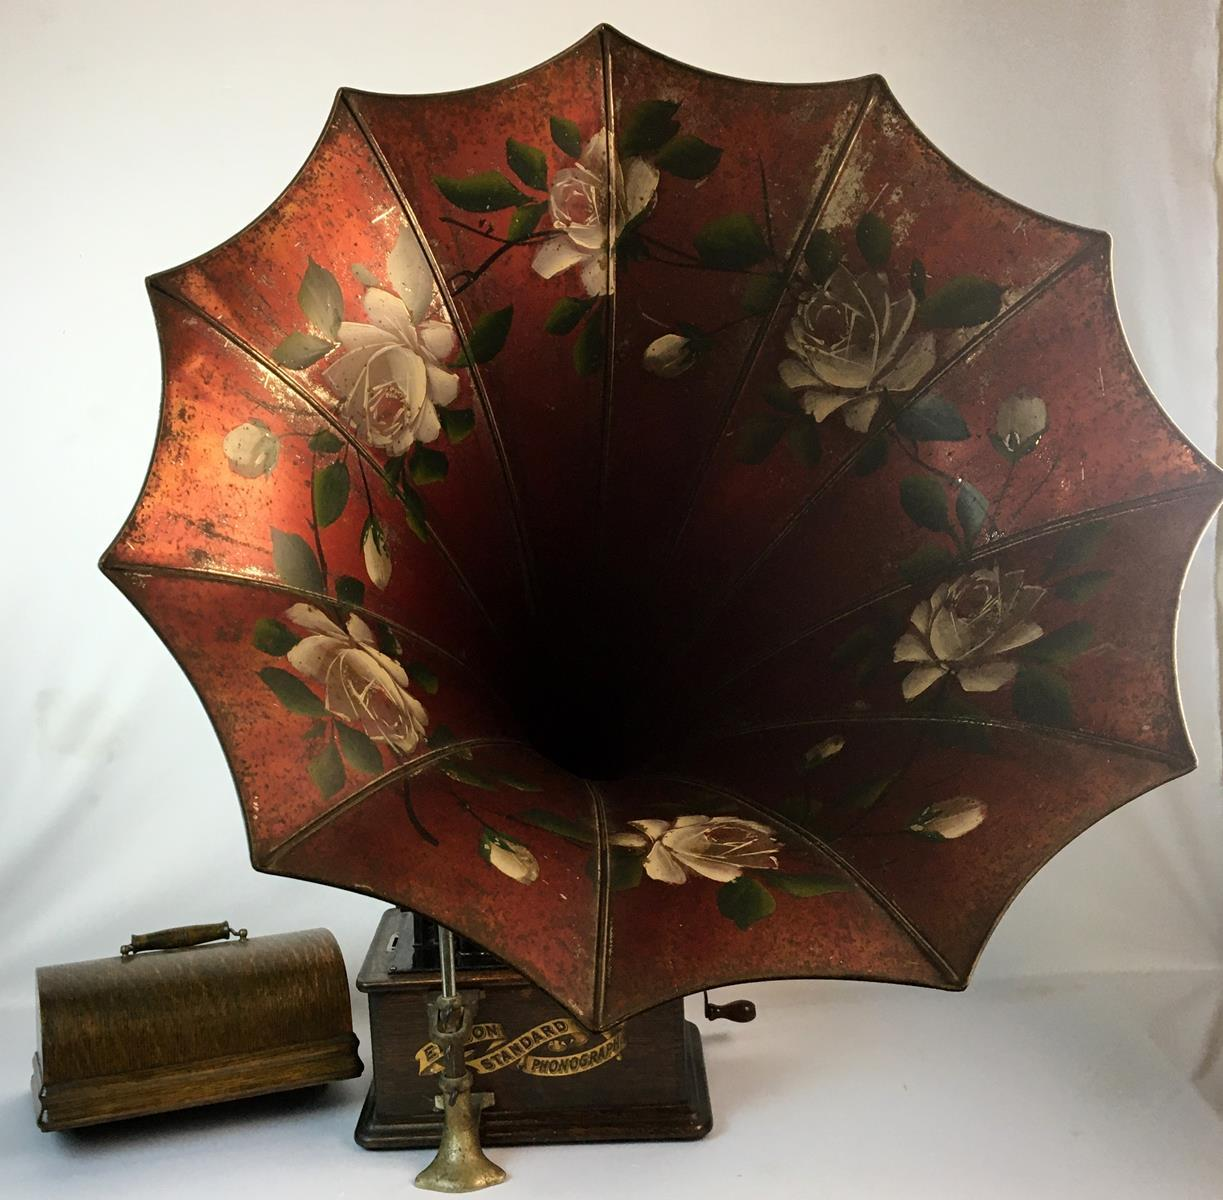 Antique 1903 Thomas Edison Standard Model H Phonograph w/ Tea Tray Co. Floral Painted Tin Horn WORKS